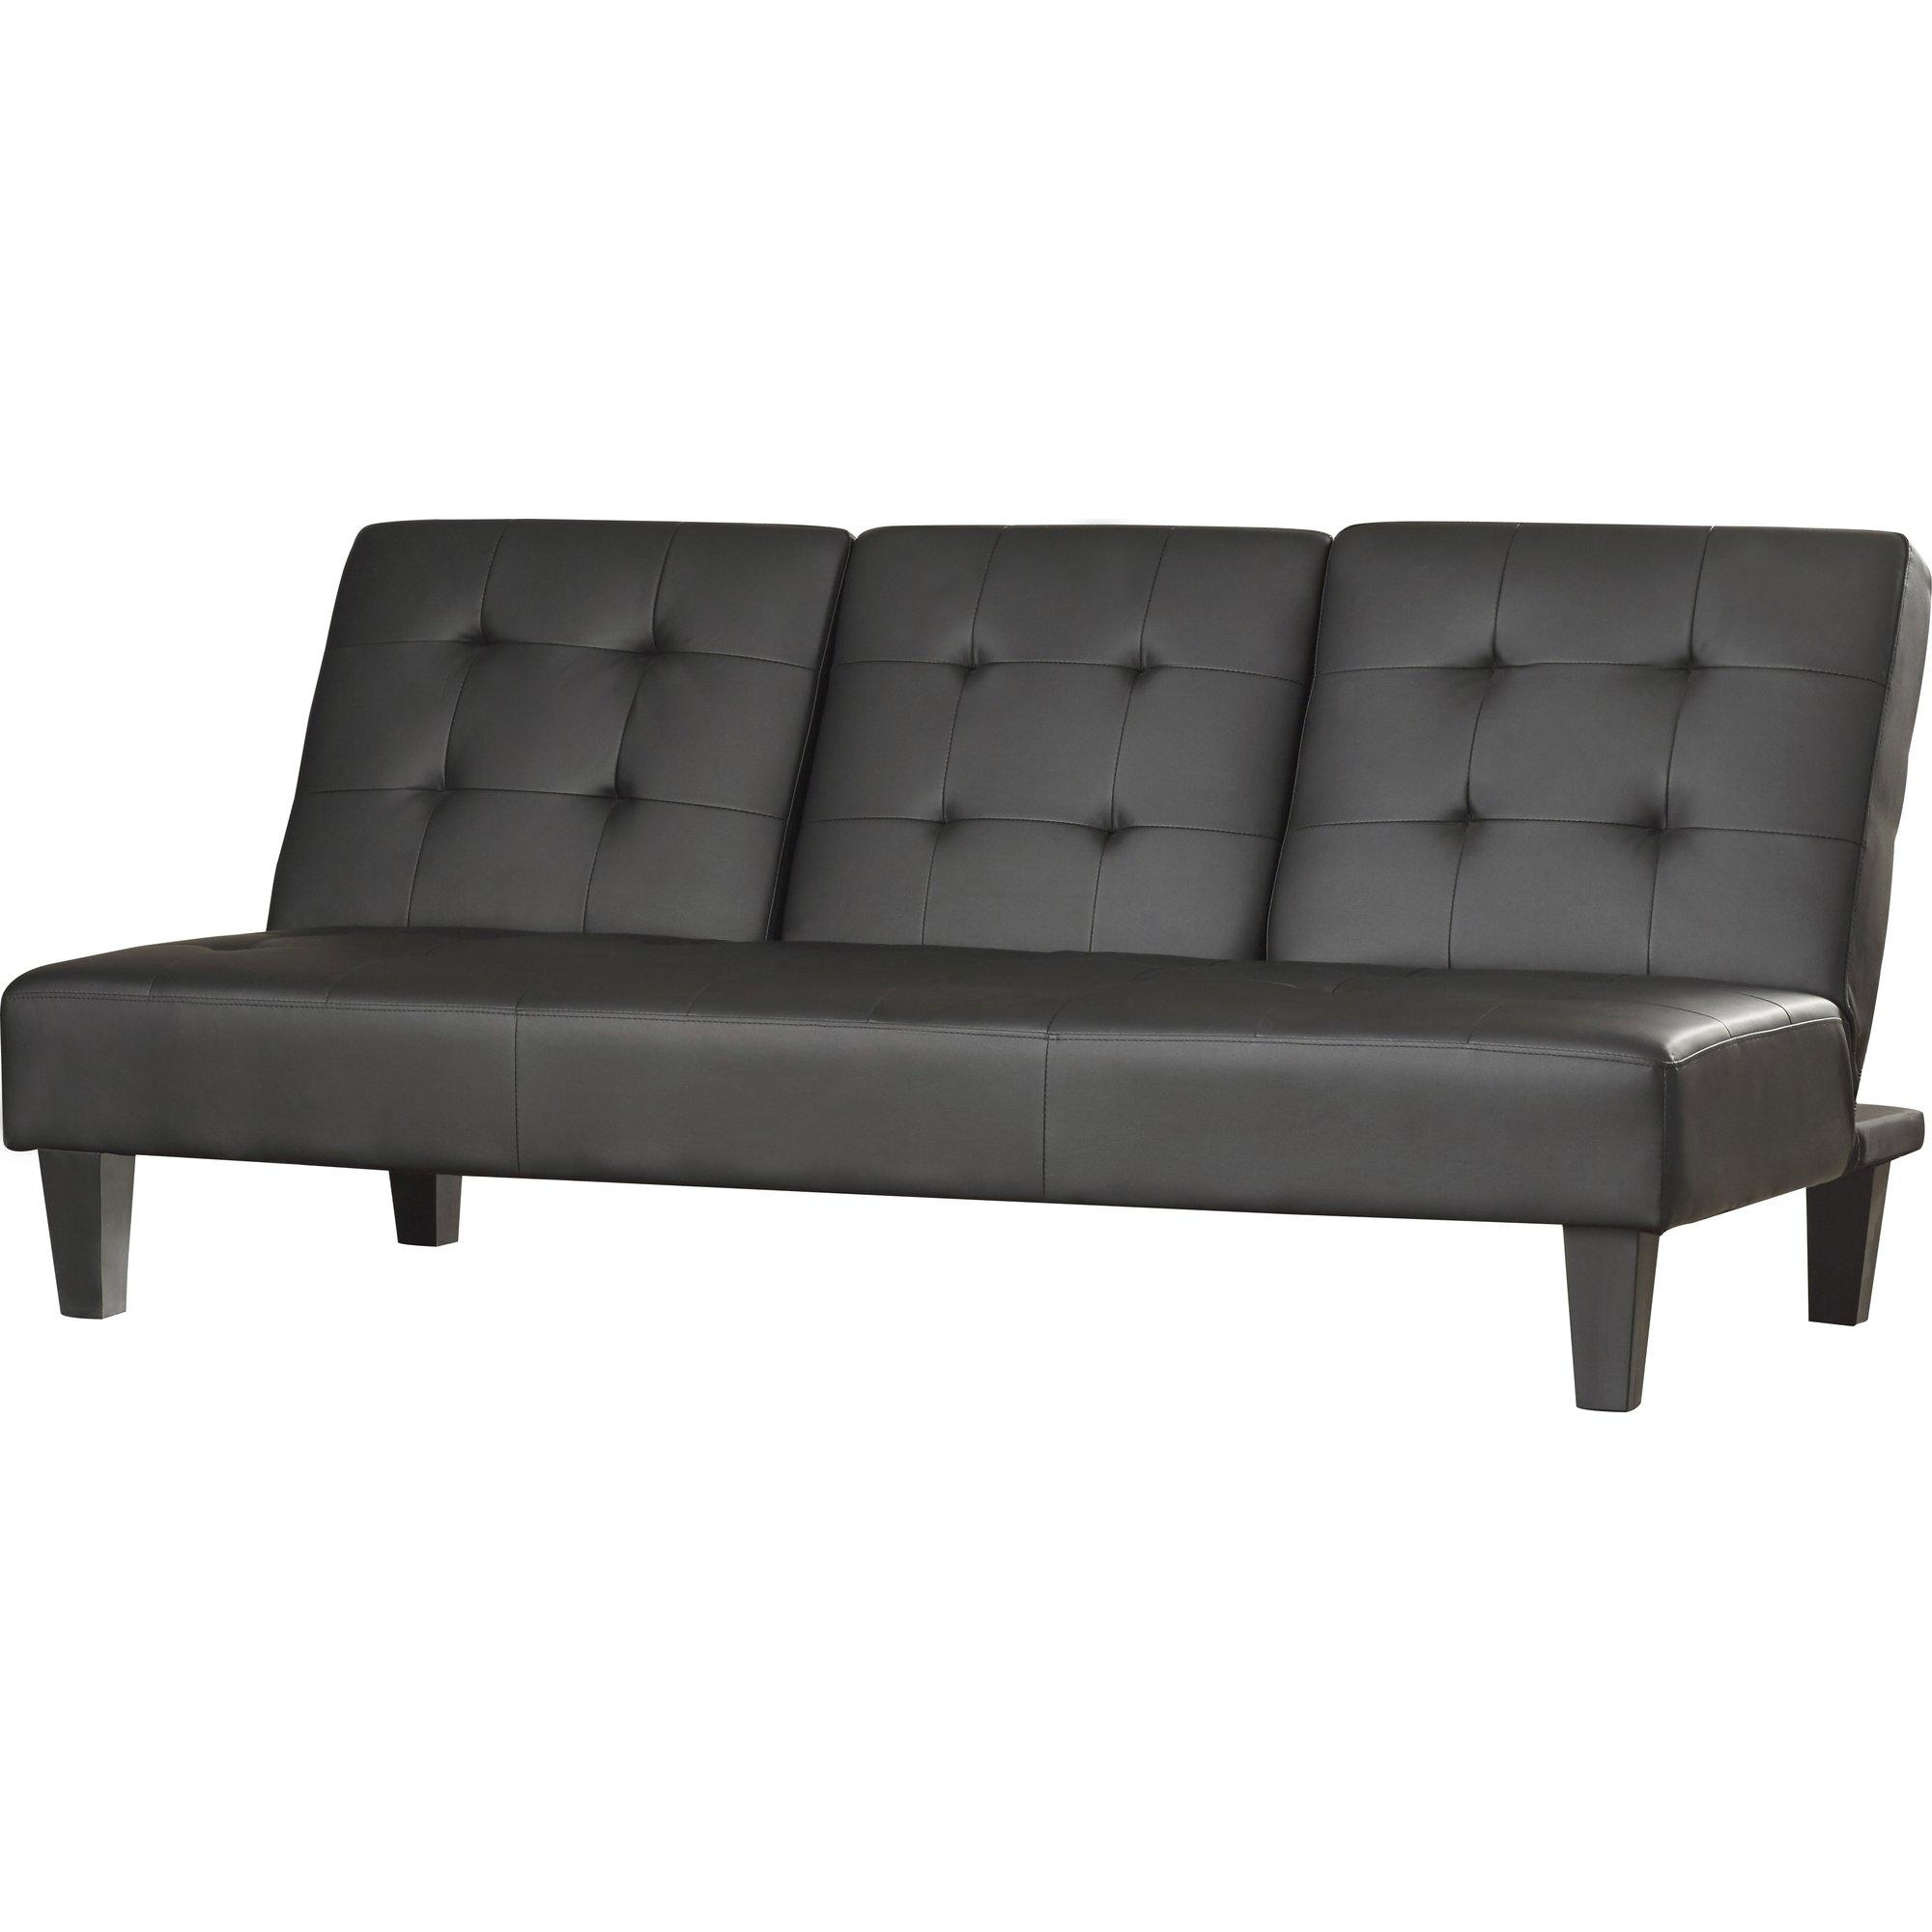 Furniture: Castro Convertible Bed For Exciting Sofabed Design With Regard To Carlyle Sofa Beds (View 15 of 20)